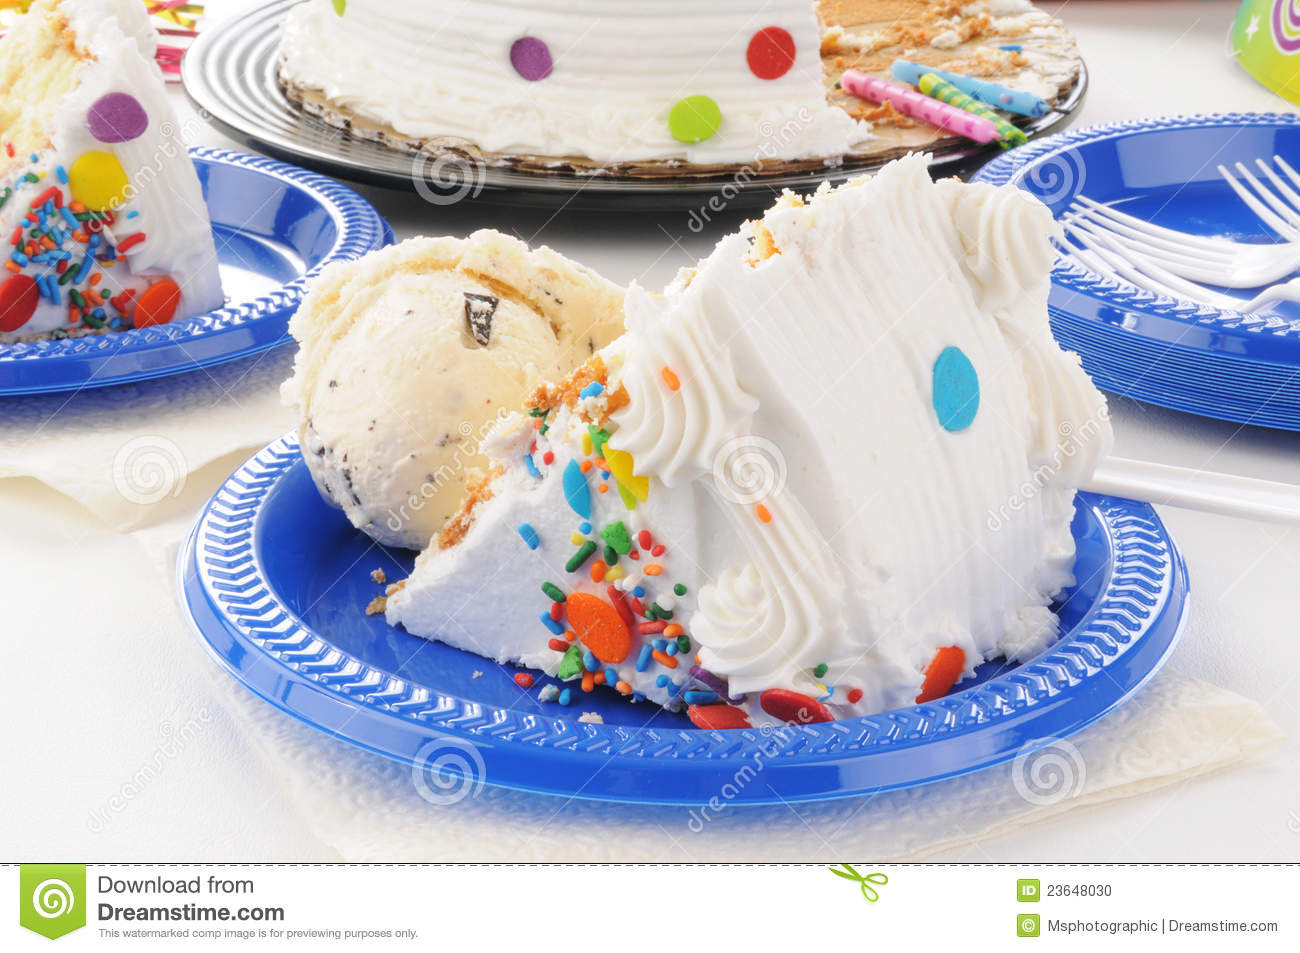 Incredible Birthday Cake And Ice Cream Stock Photo Image Of Frosting Treat Funny Birthday Cards Online Inifodamsfinfo